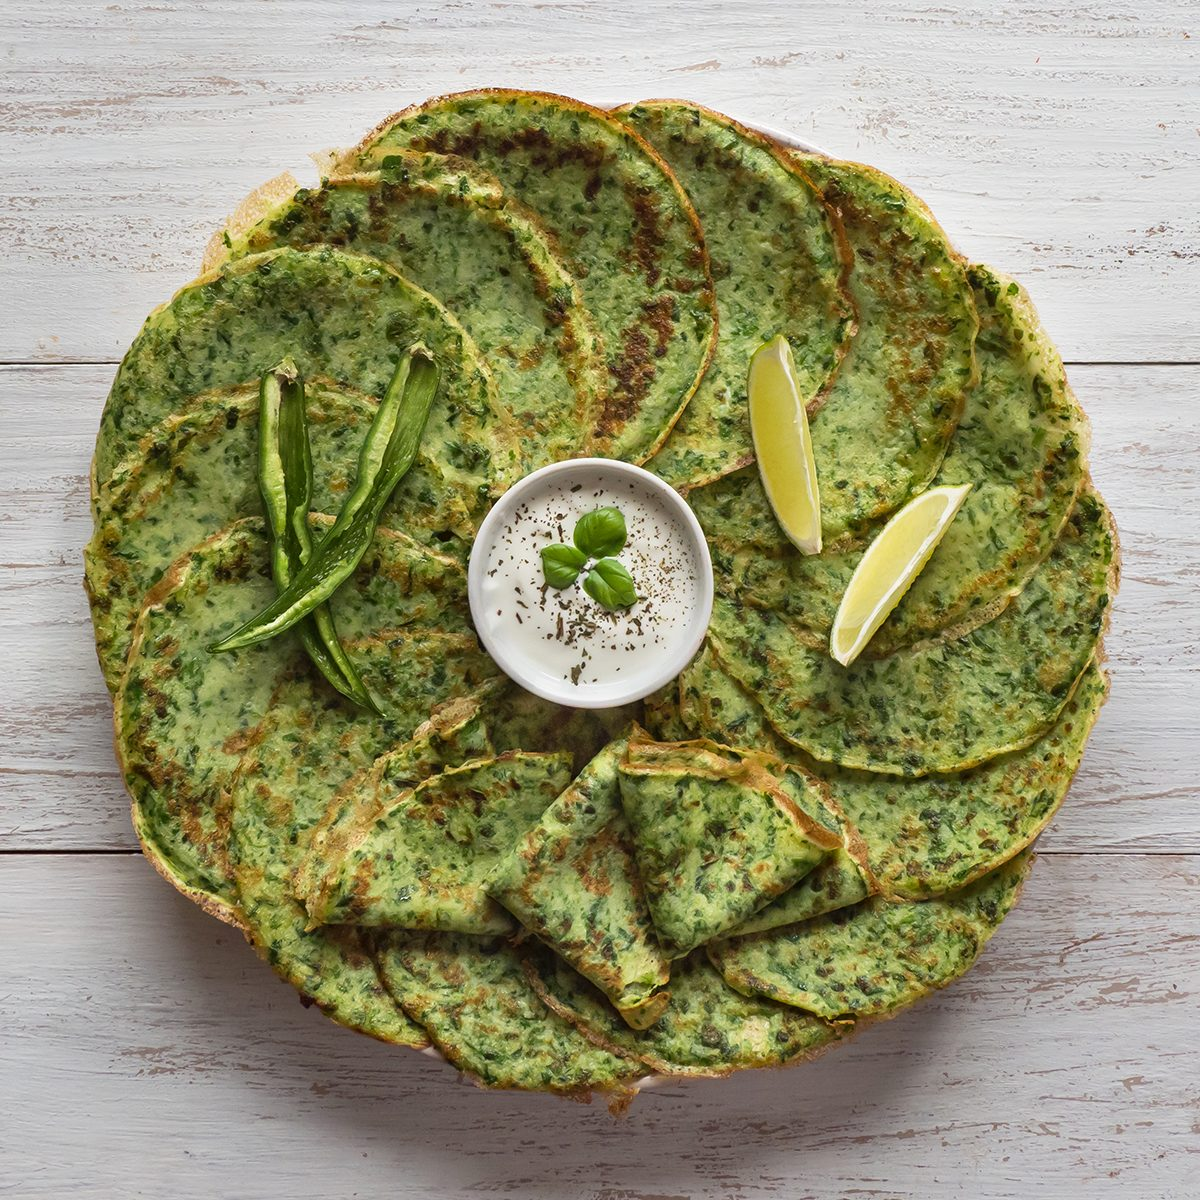 Spinach Adai - Indian green pancakes. Handmade food.